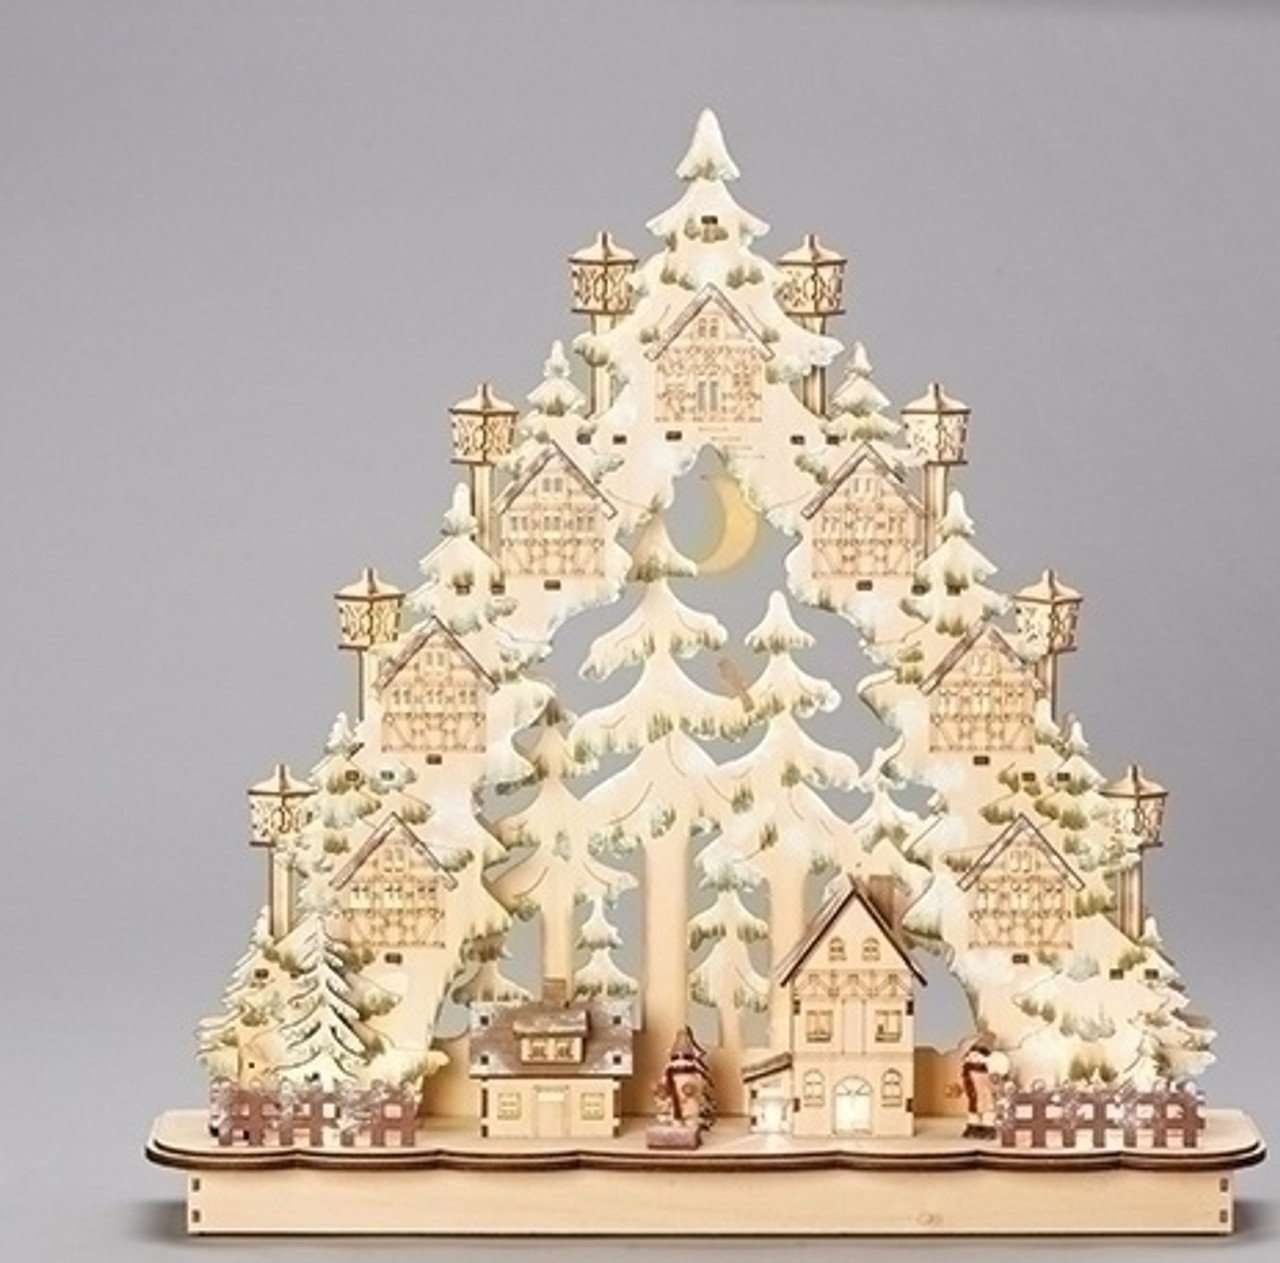 19 wooden led laser cut town in tree 32630282 - Wooden Led Christmas Decoration